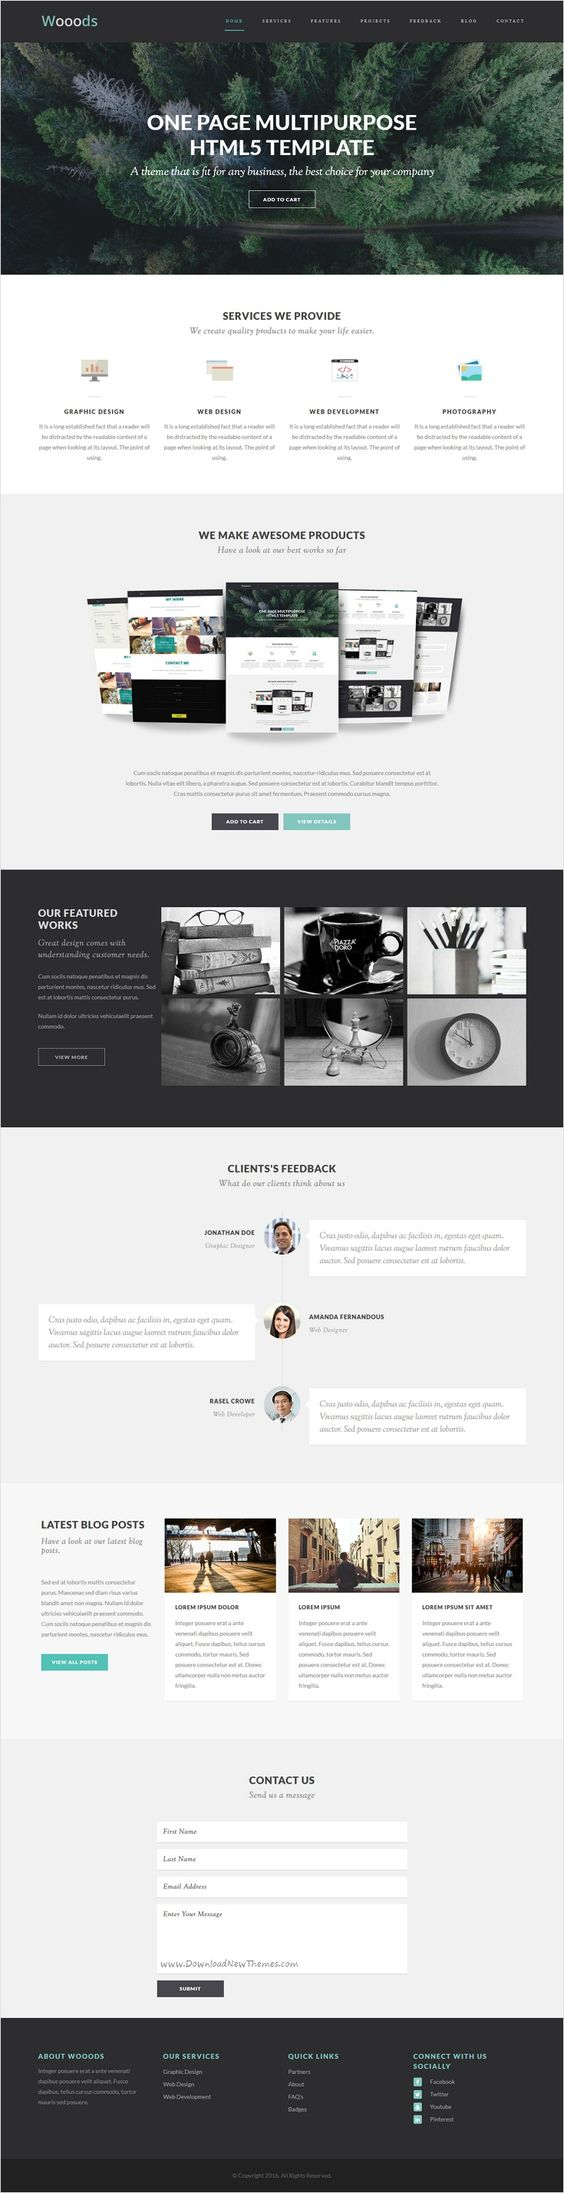 WOOODS - One Page Multipurpose HTML5 Template